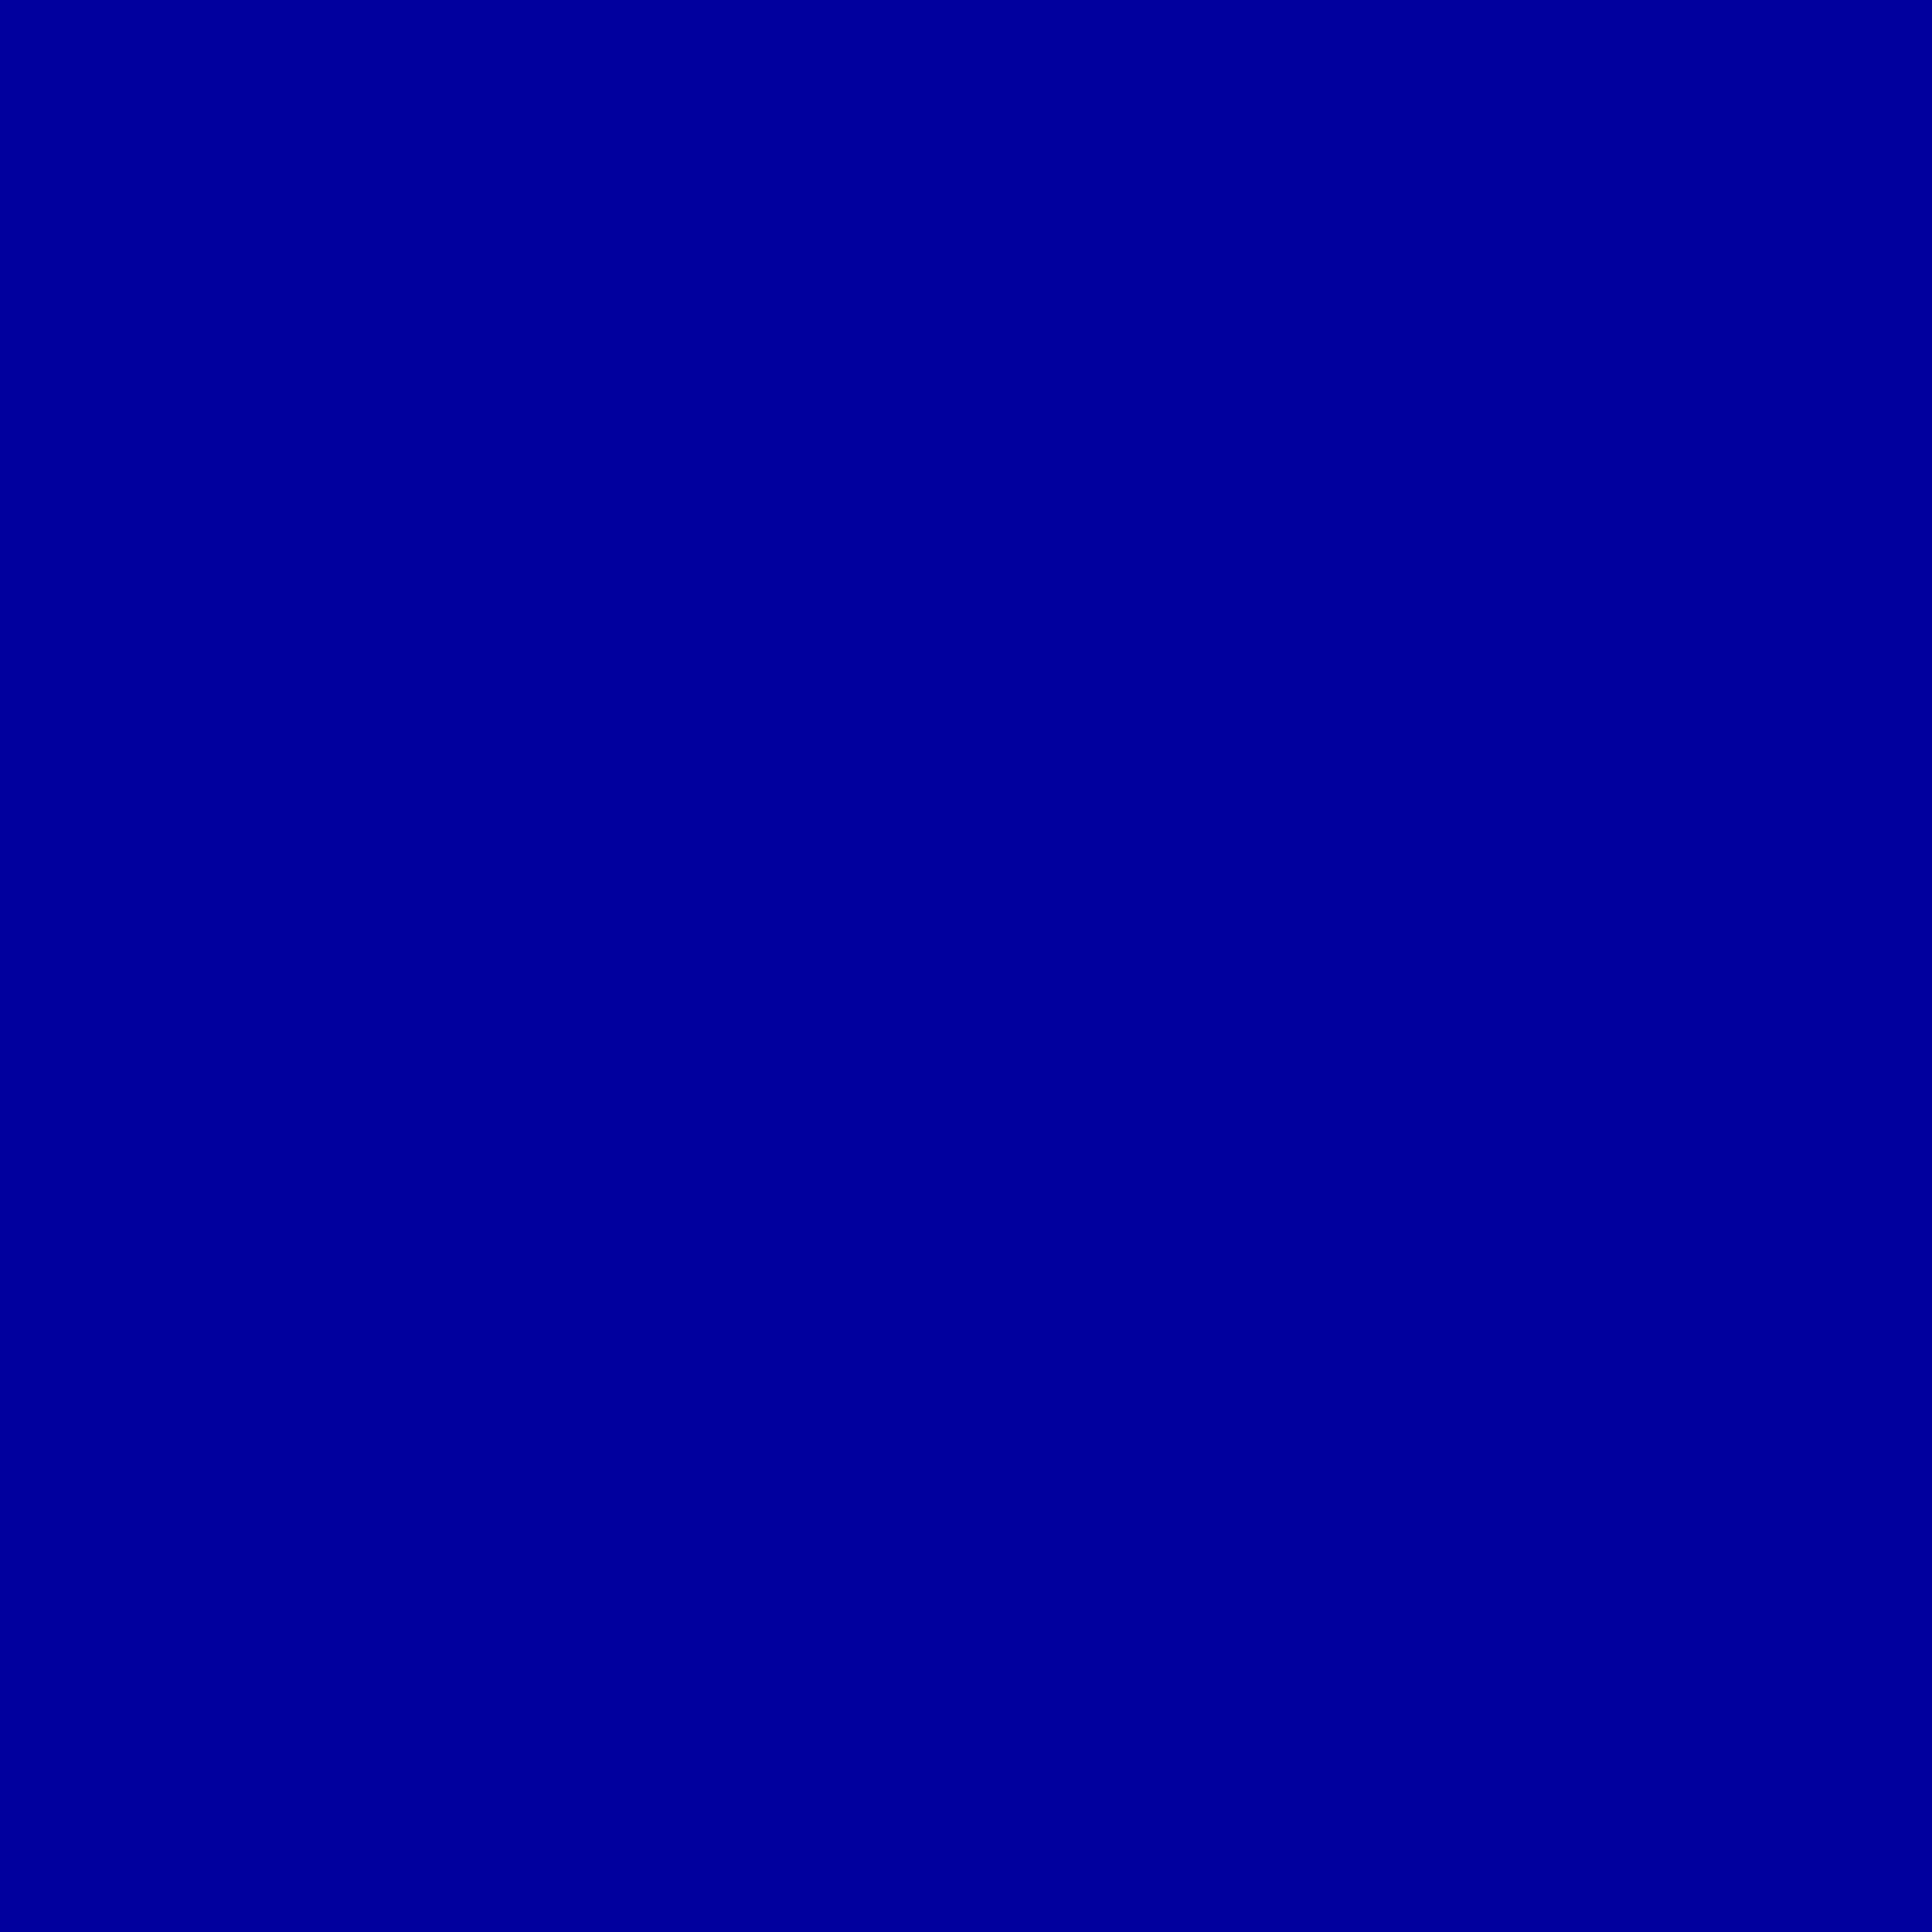 3600x3600 Duke Blue Solid Color Background